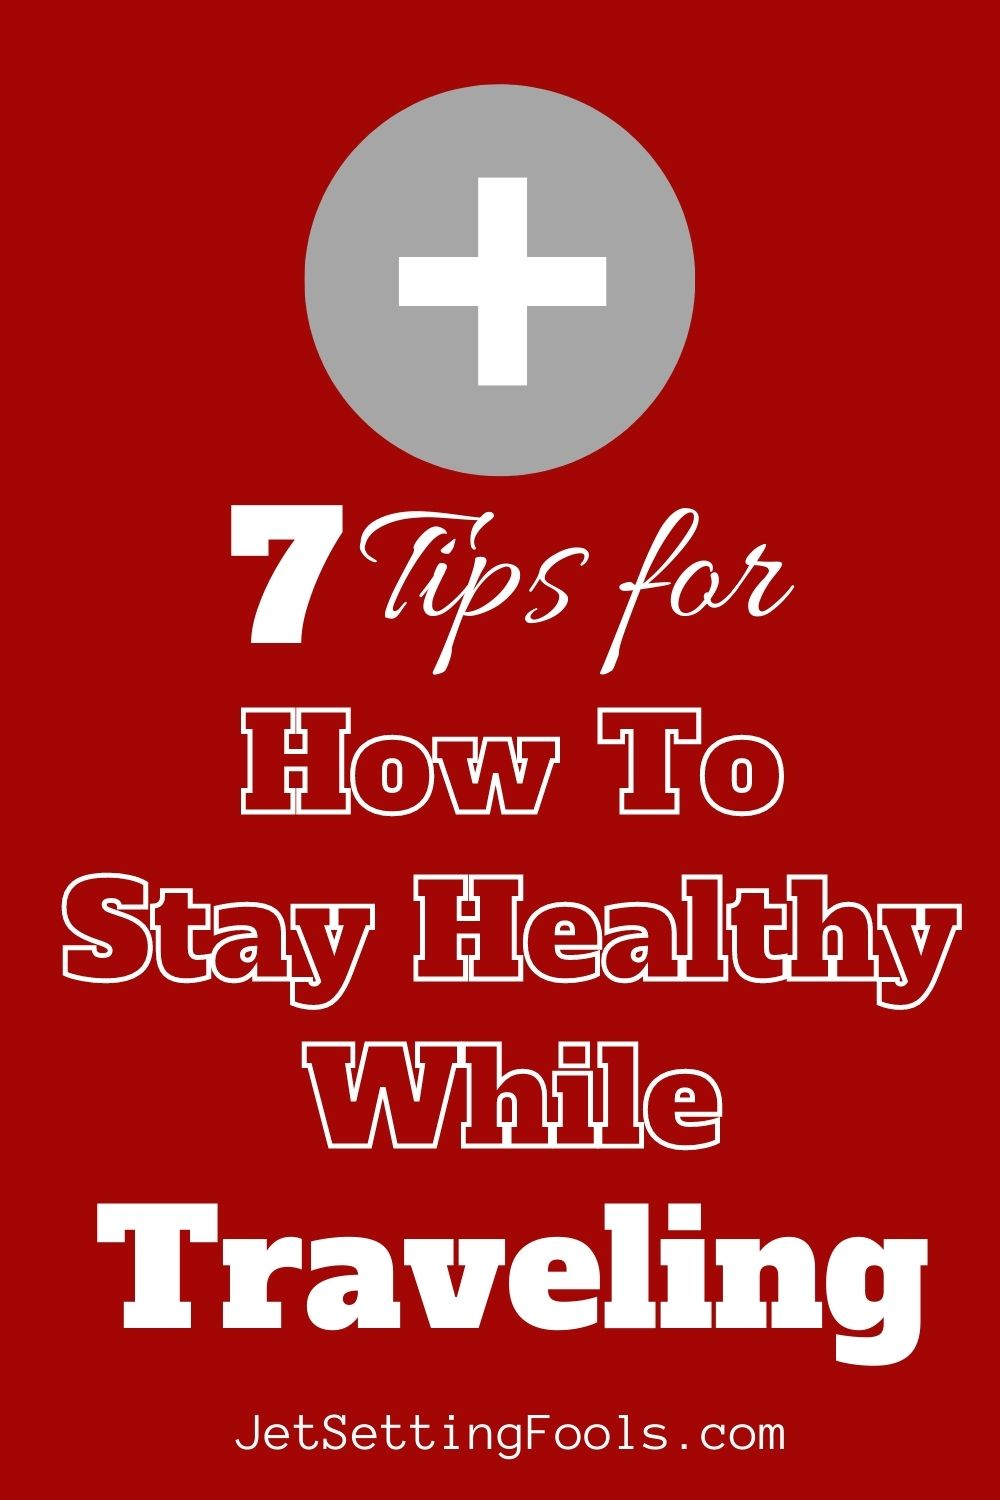 How To Stay Healthy While Traveling by JetSettingFools.com